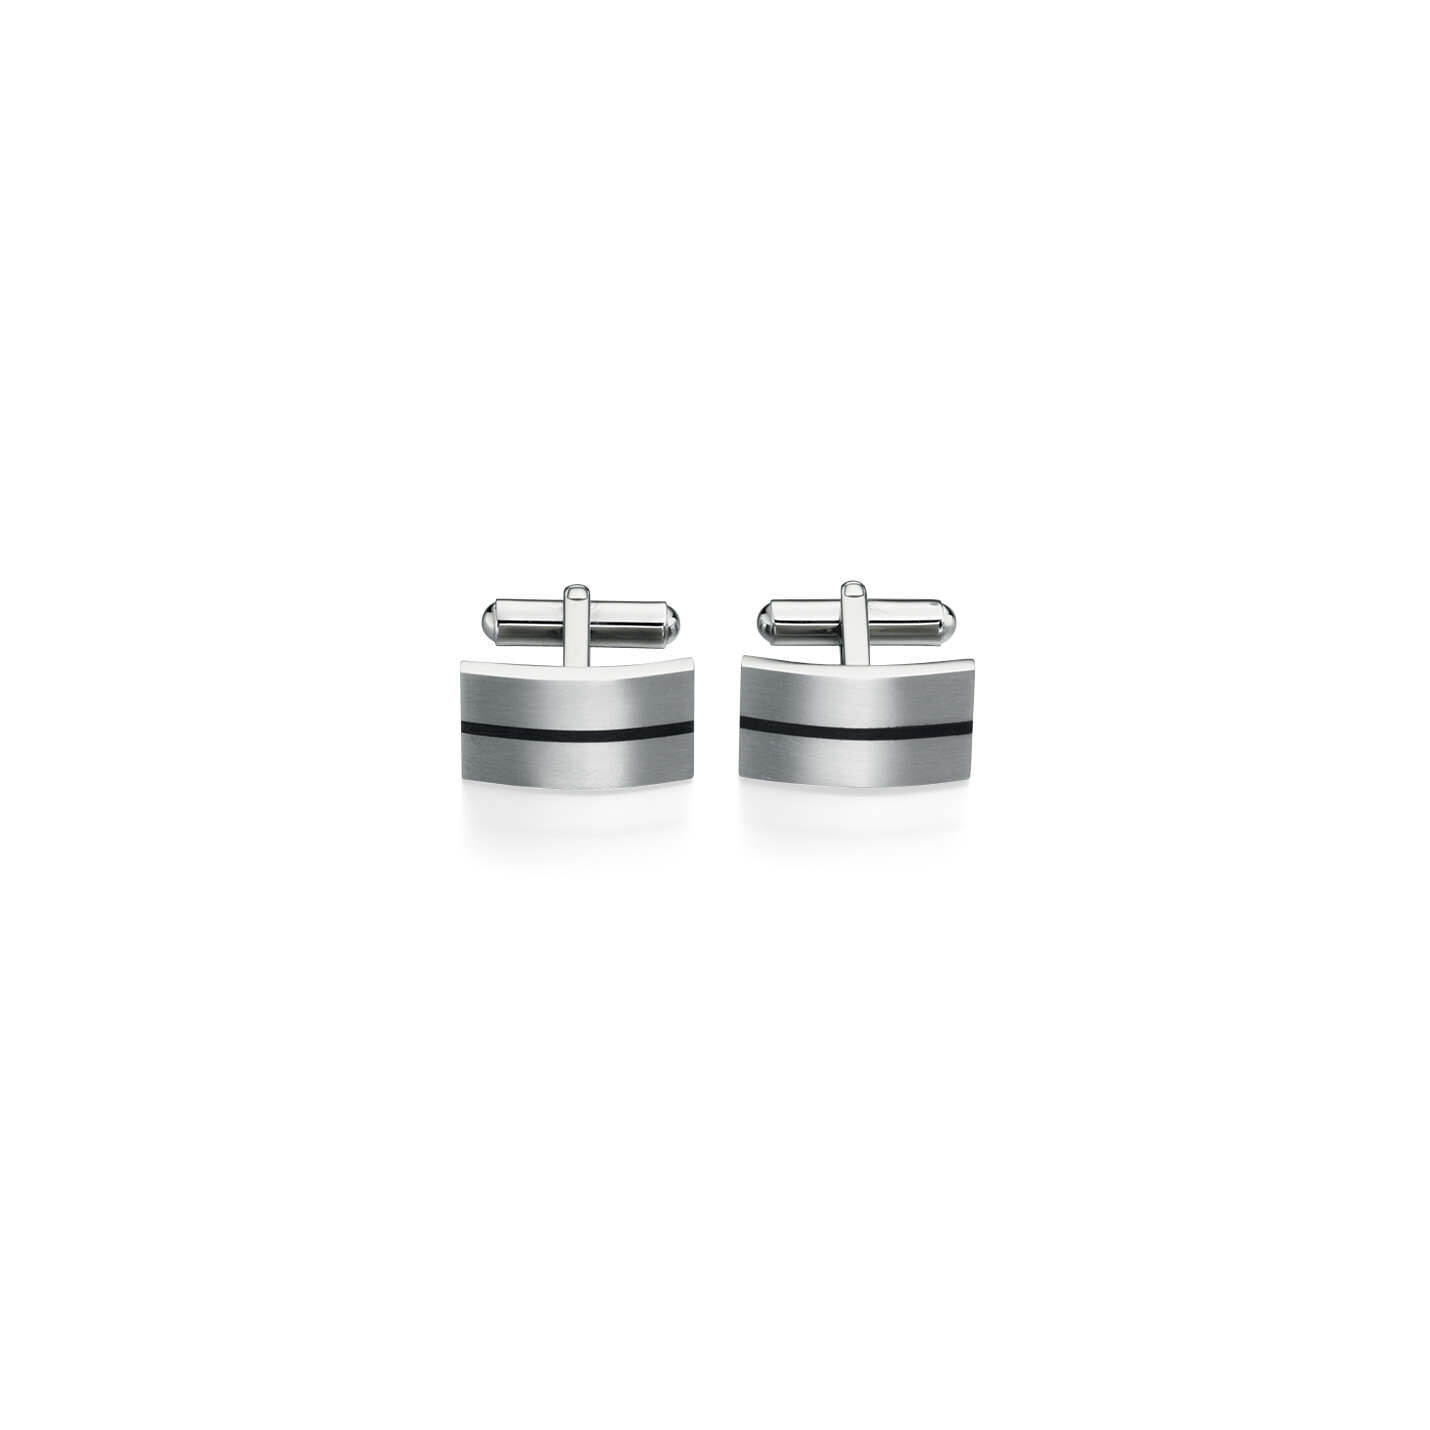 Curved rectangular Fred Bennett brushed Stainless steel cuff links with black enamel stripe.